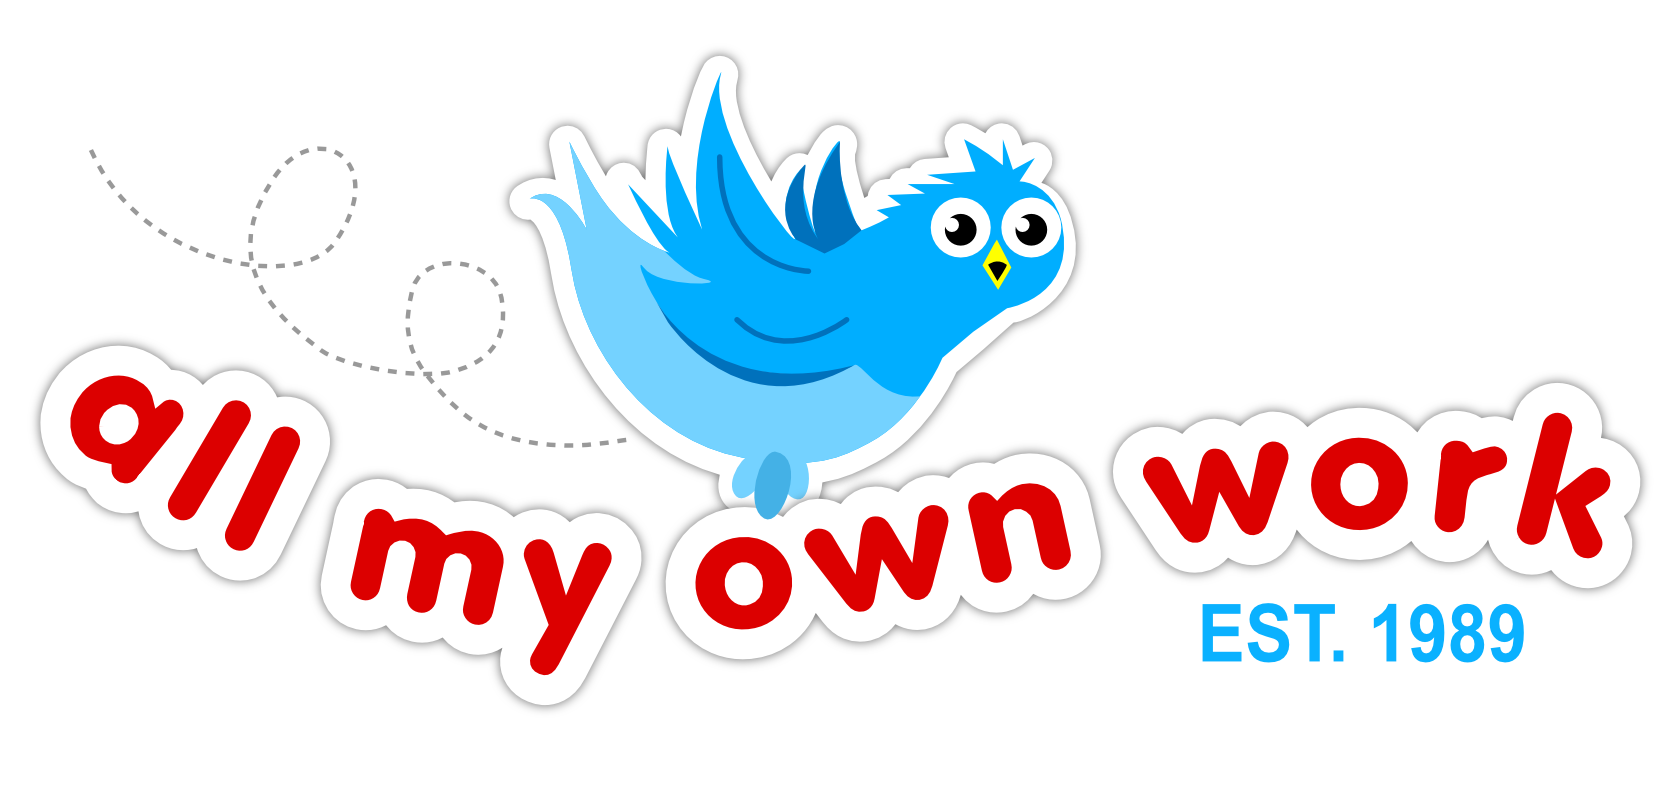 all-my-own-work-logo-footer@2x.png